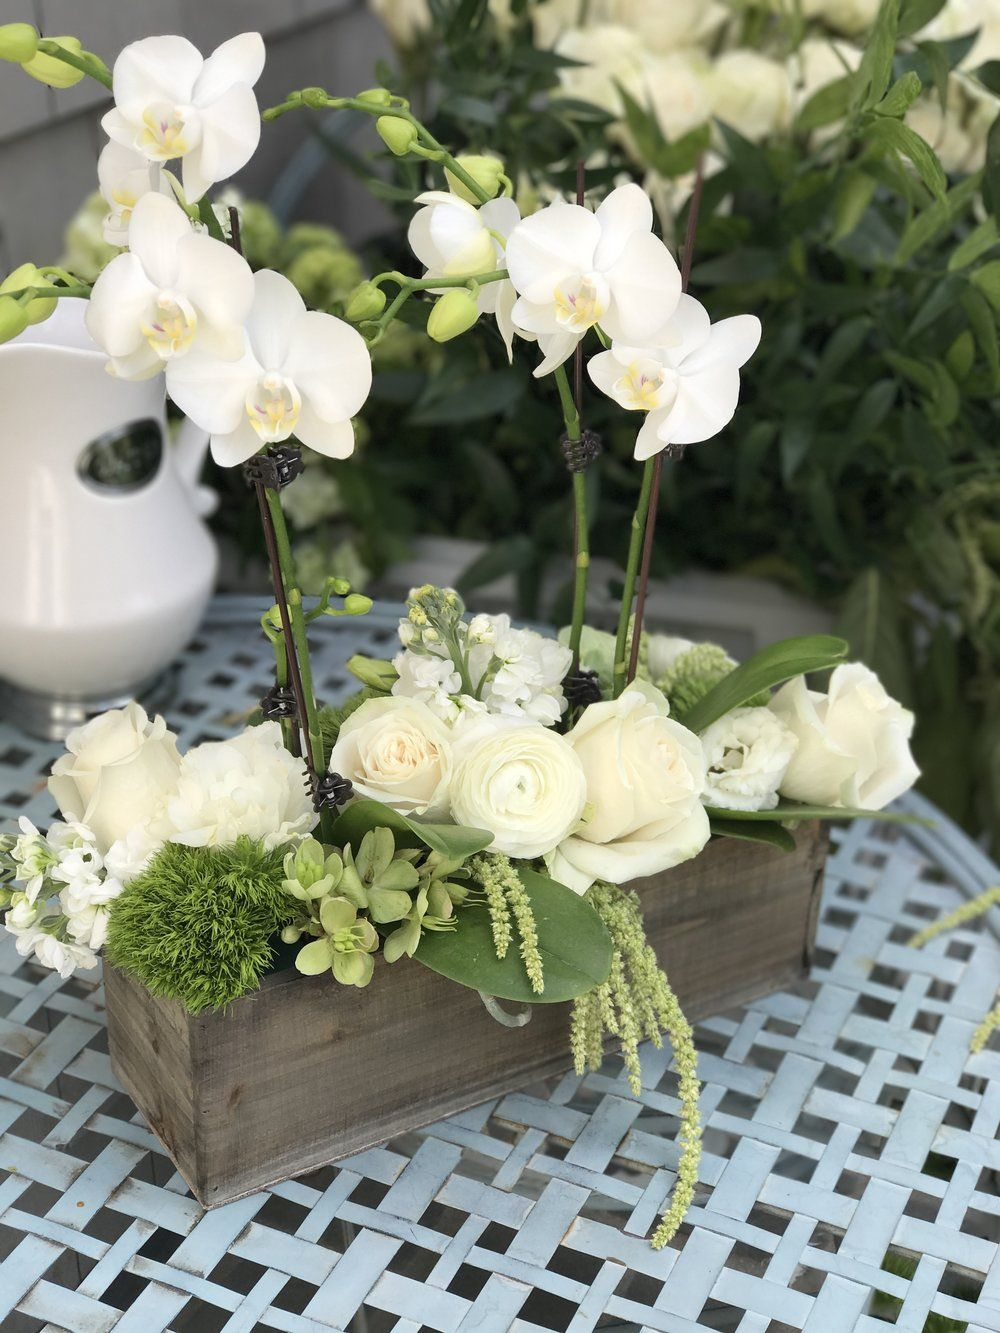 Admirable Diy Centerpiece With Step By Step Instructions Home Interior And Landscaping Transignezvosmurscom